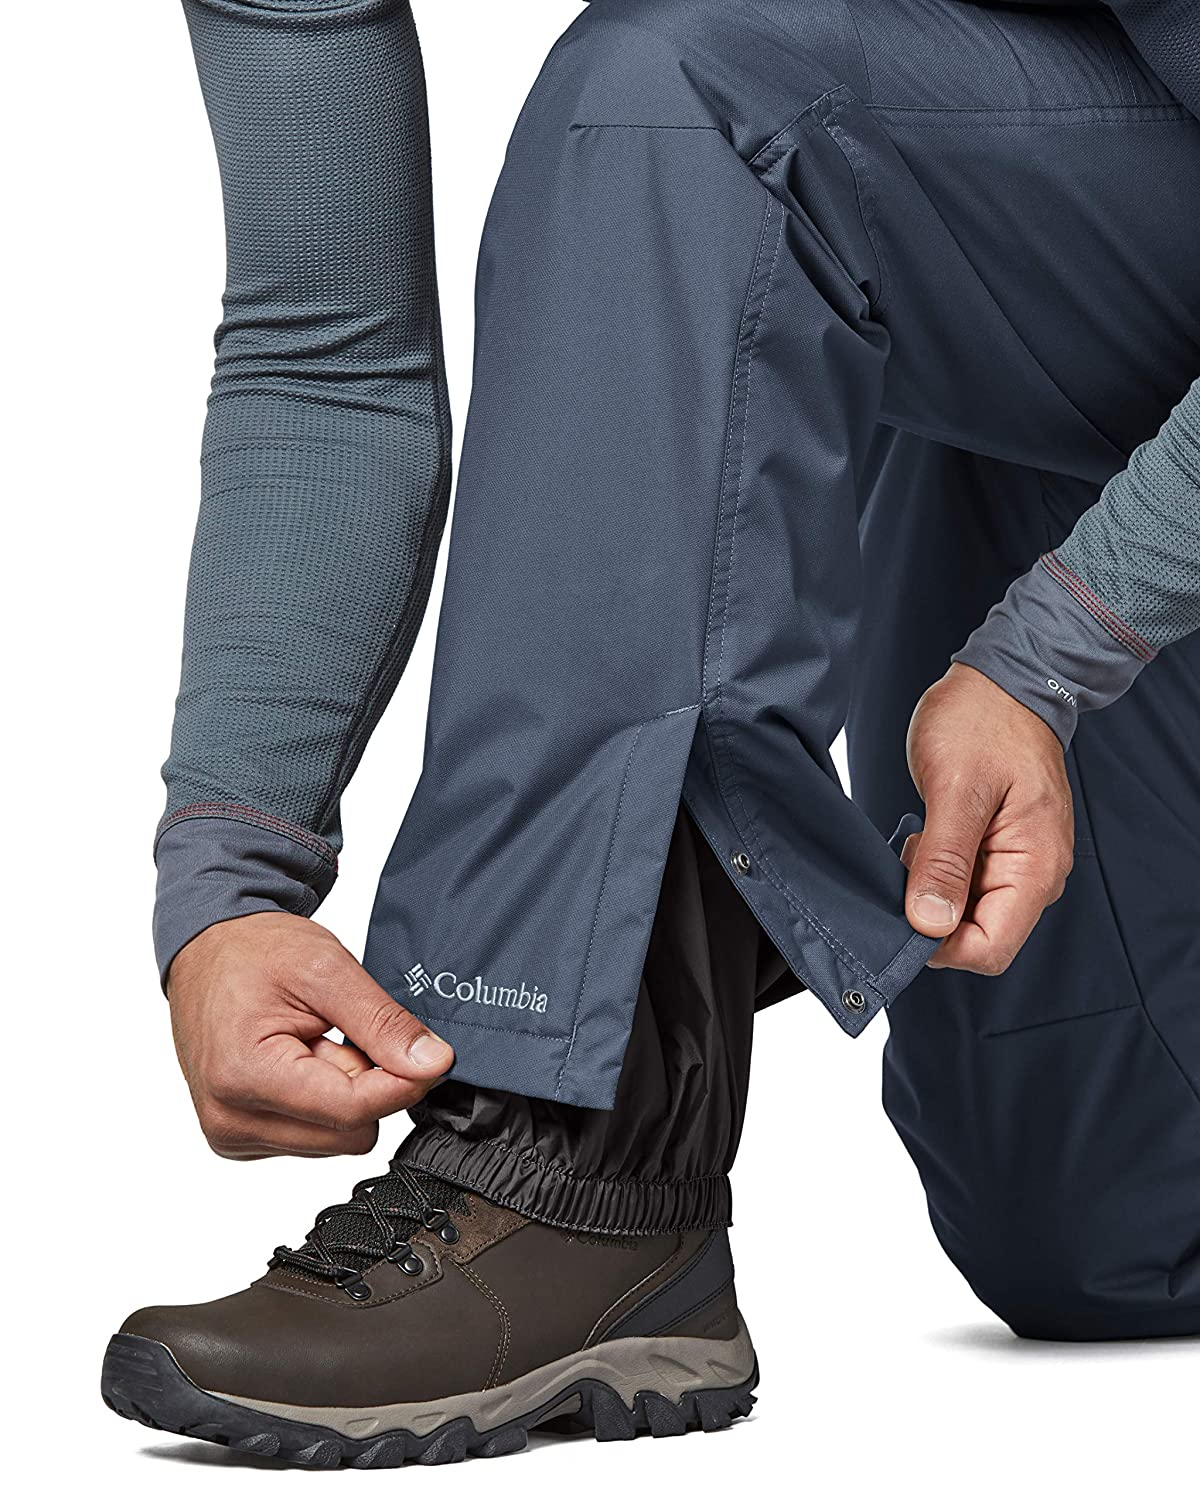 Columbia Men/'s Bugaboo II Pant Waterproof and Breathable 1798231